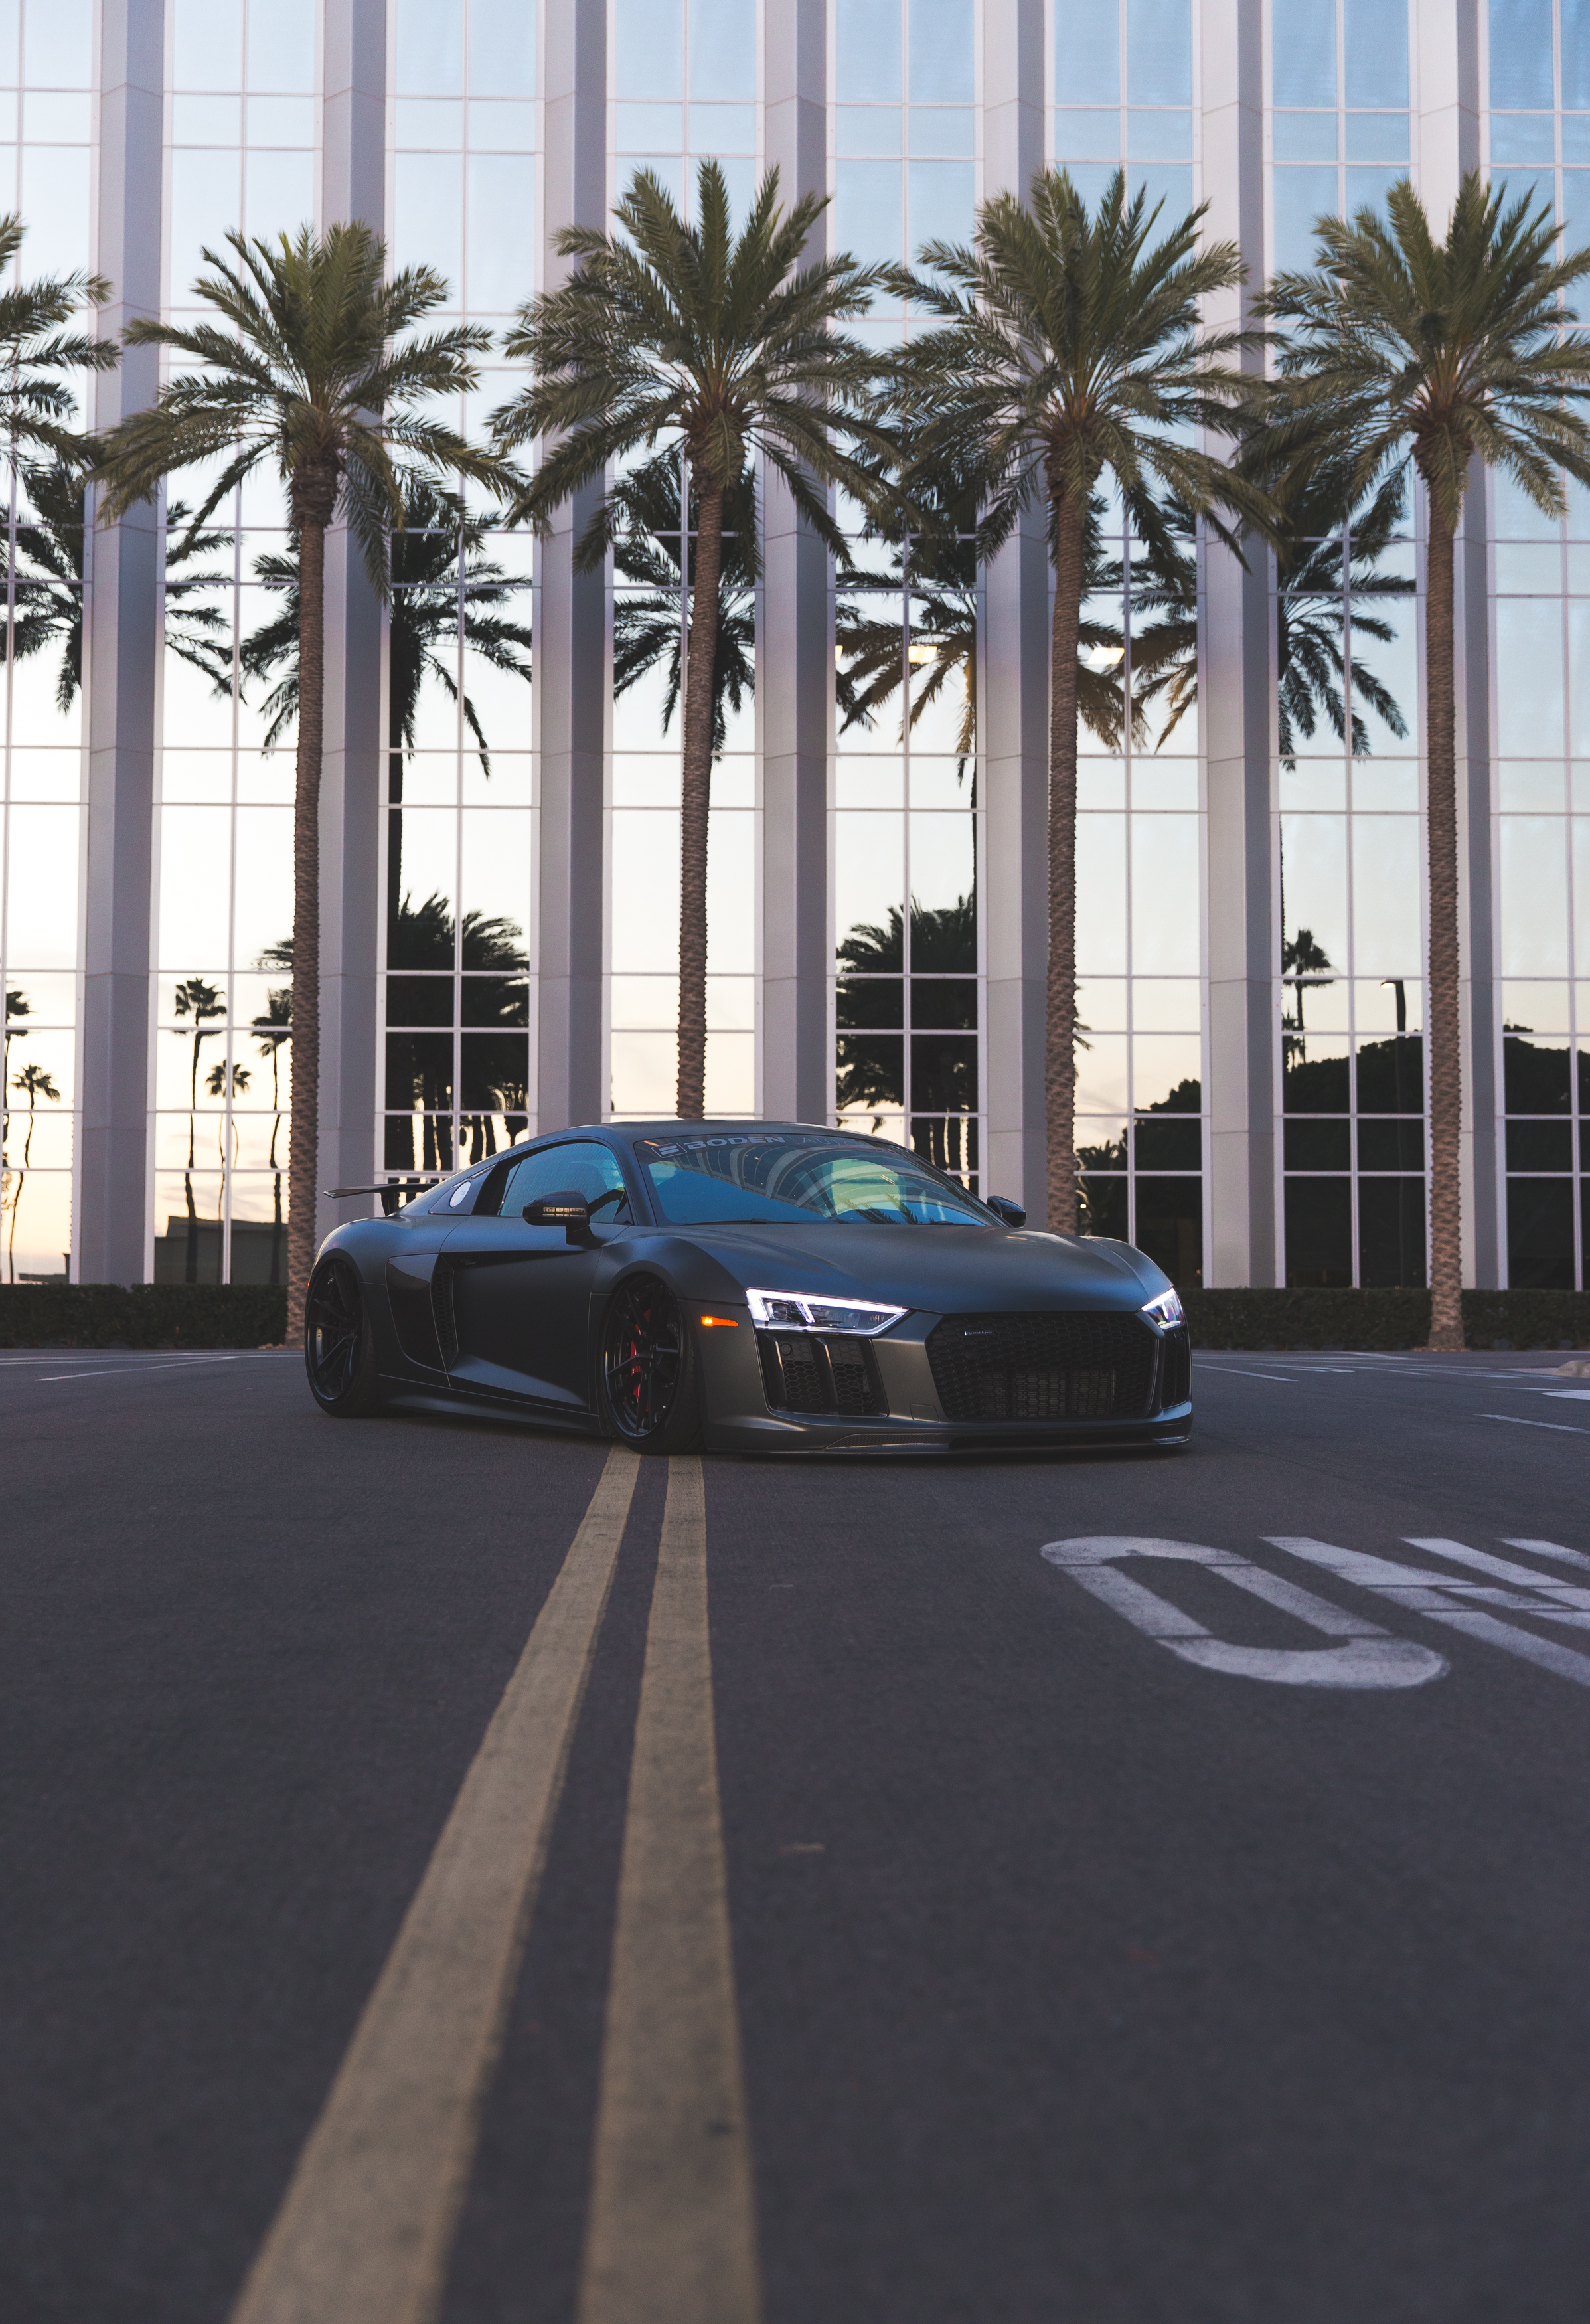 Stay_Driven_Page_R8_Newport-27.jpg